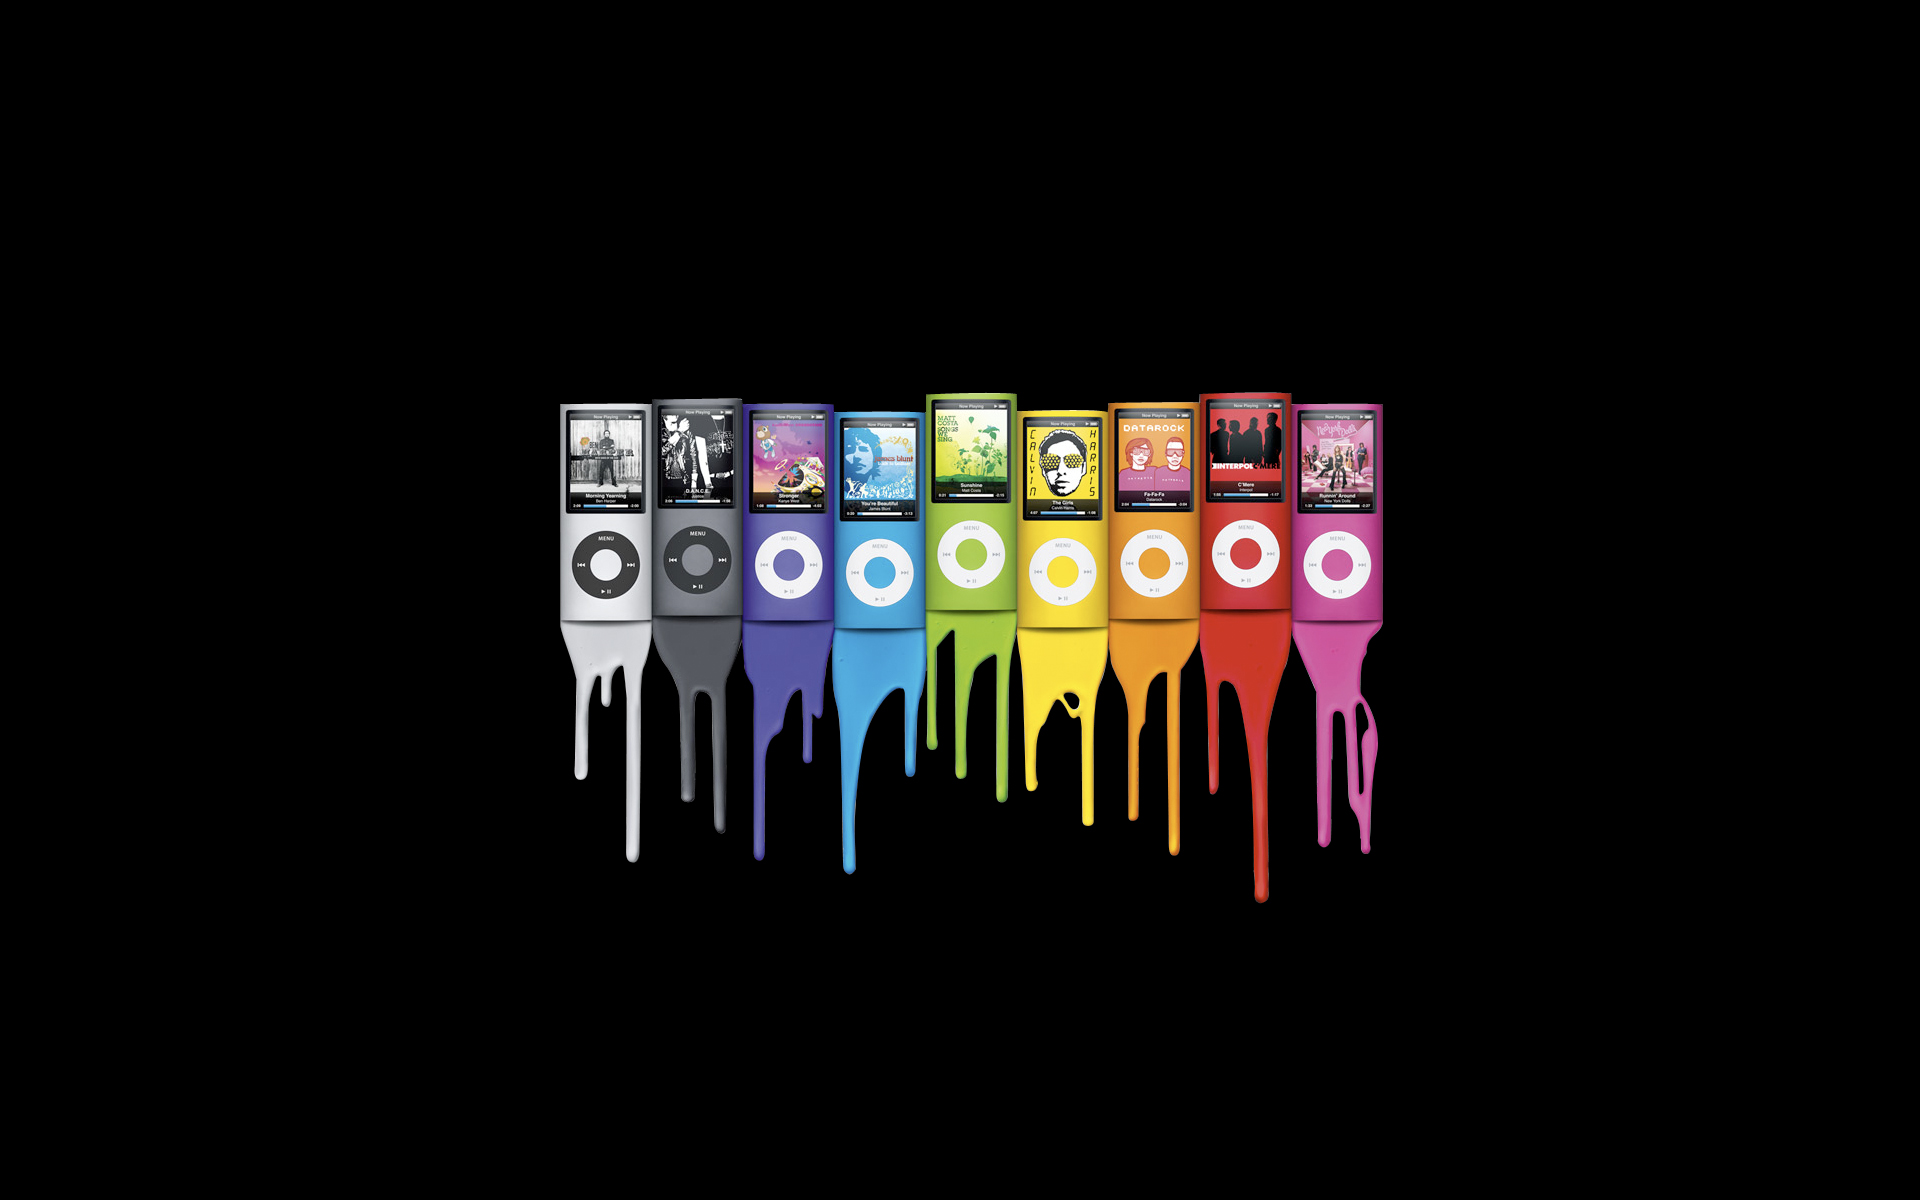 Apple Looking to Trim Record Labels' Cut (AAPL)